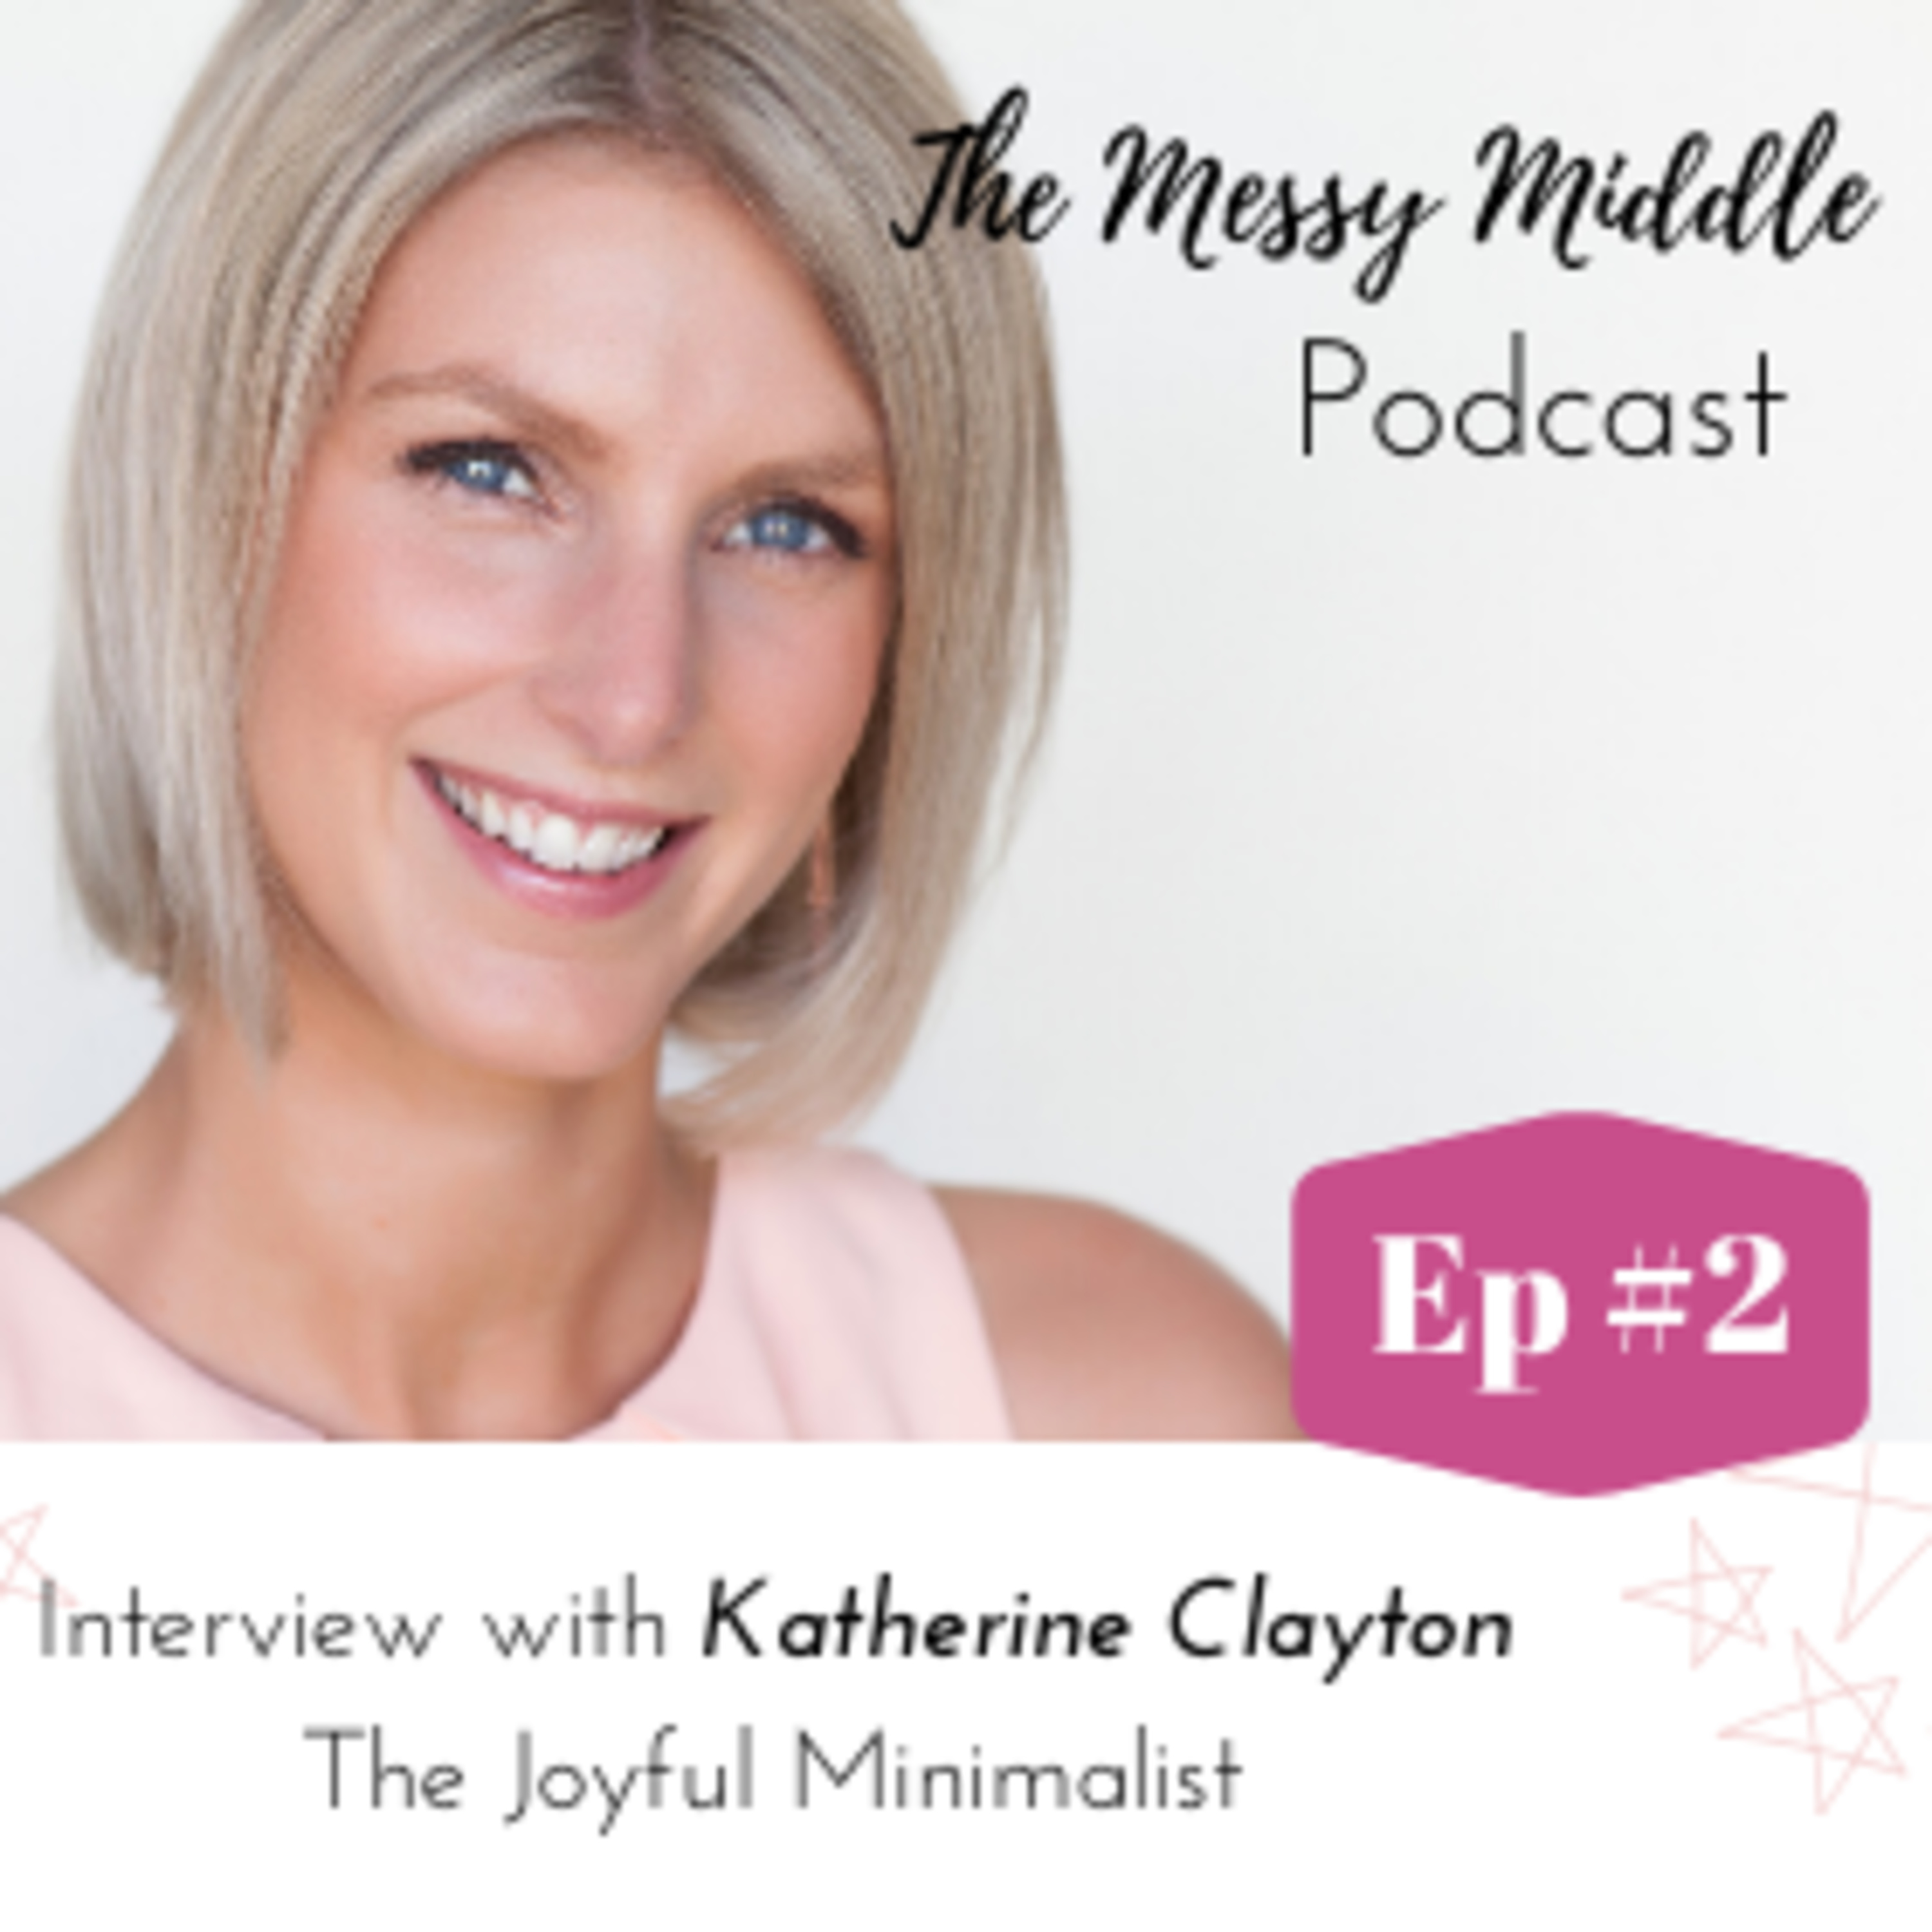 #2 Interview with Katherine Clayton